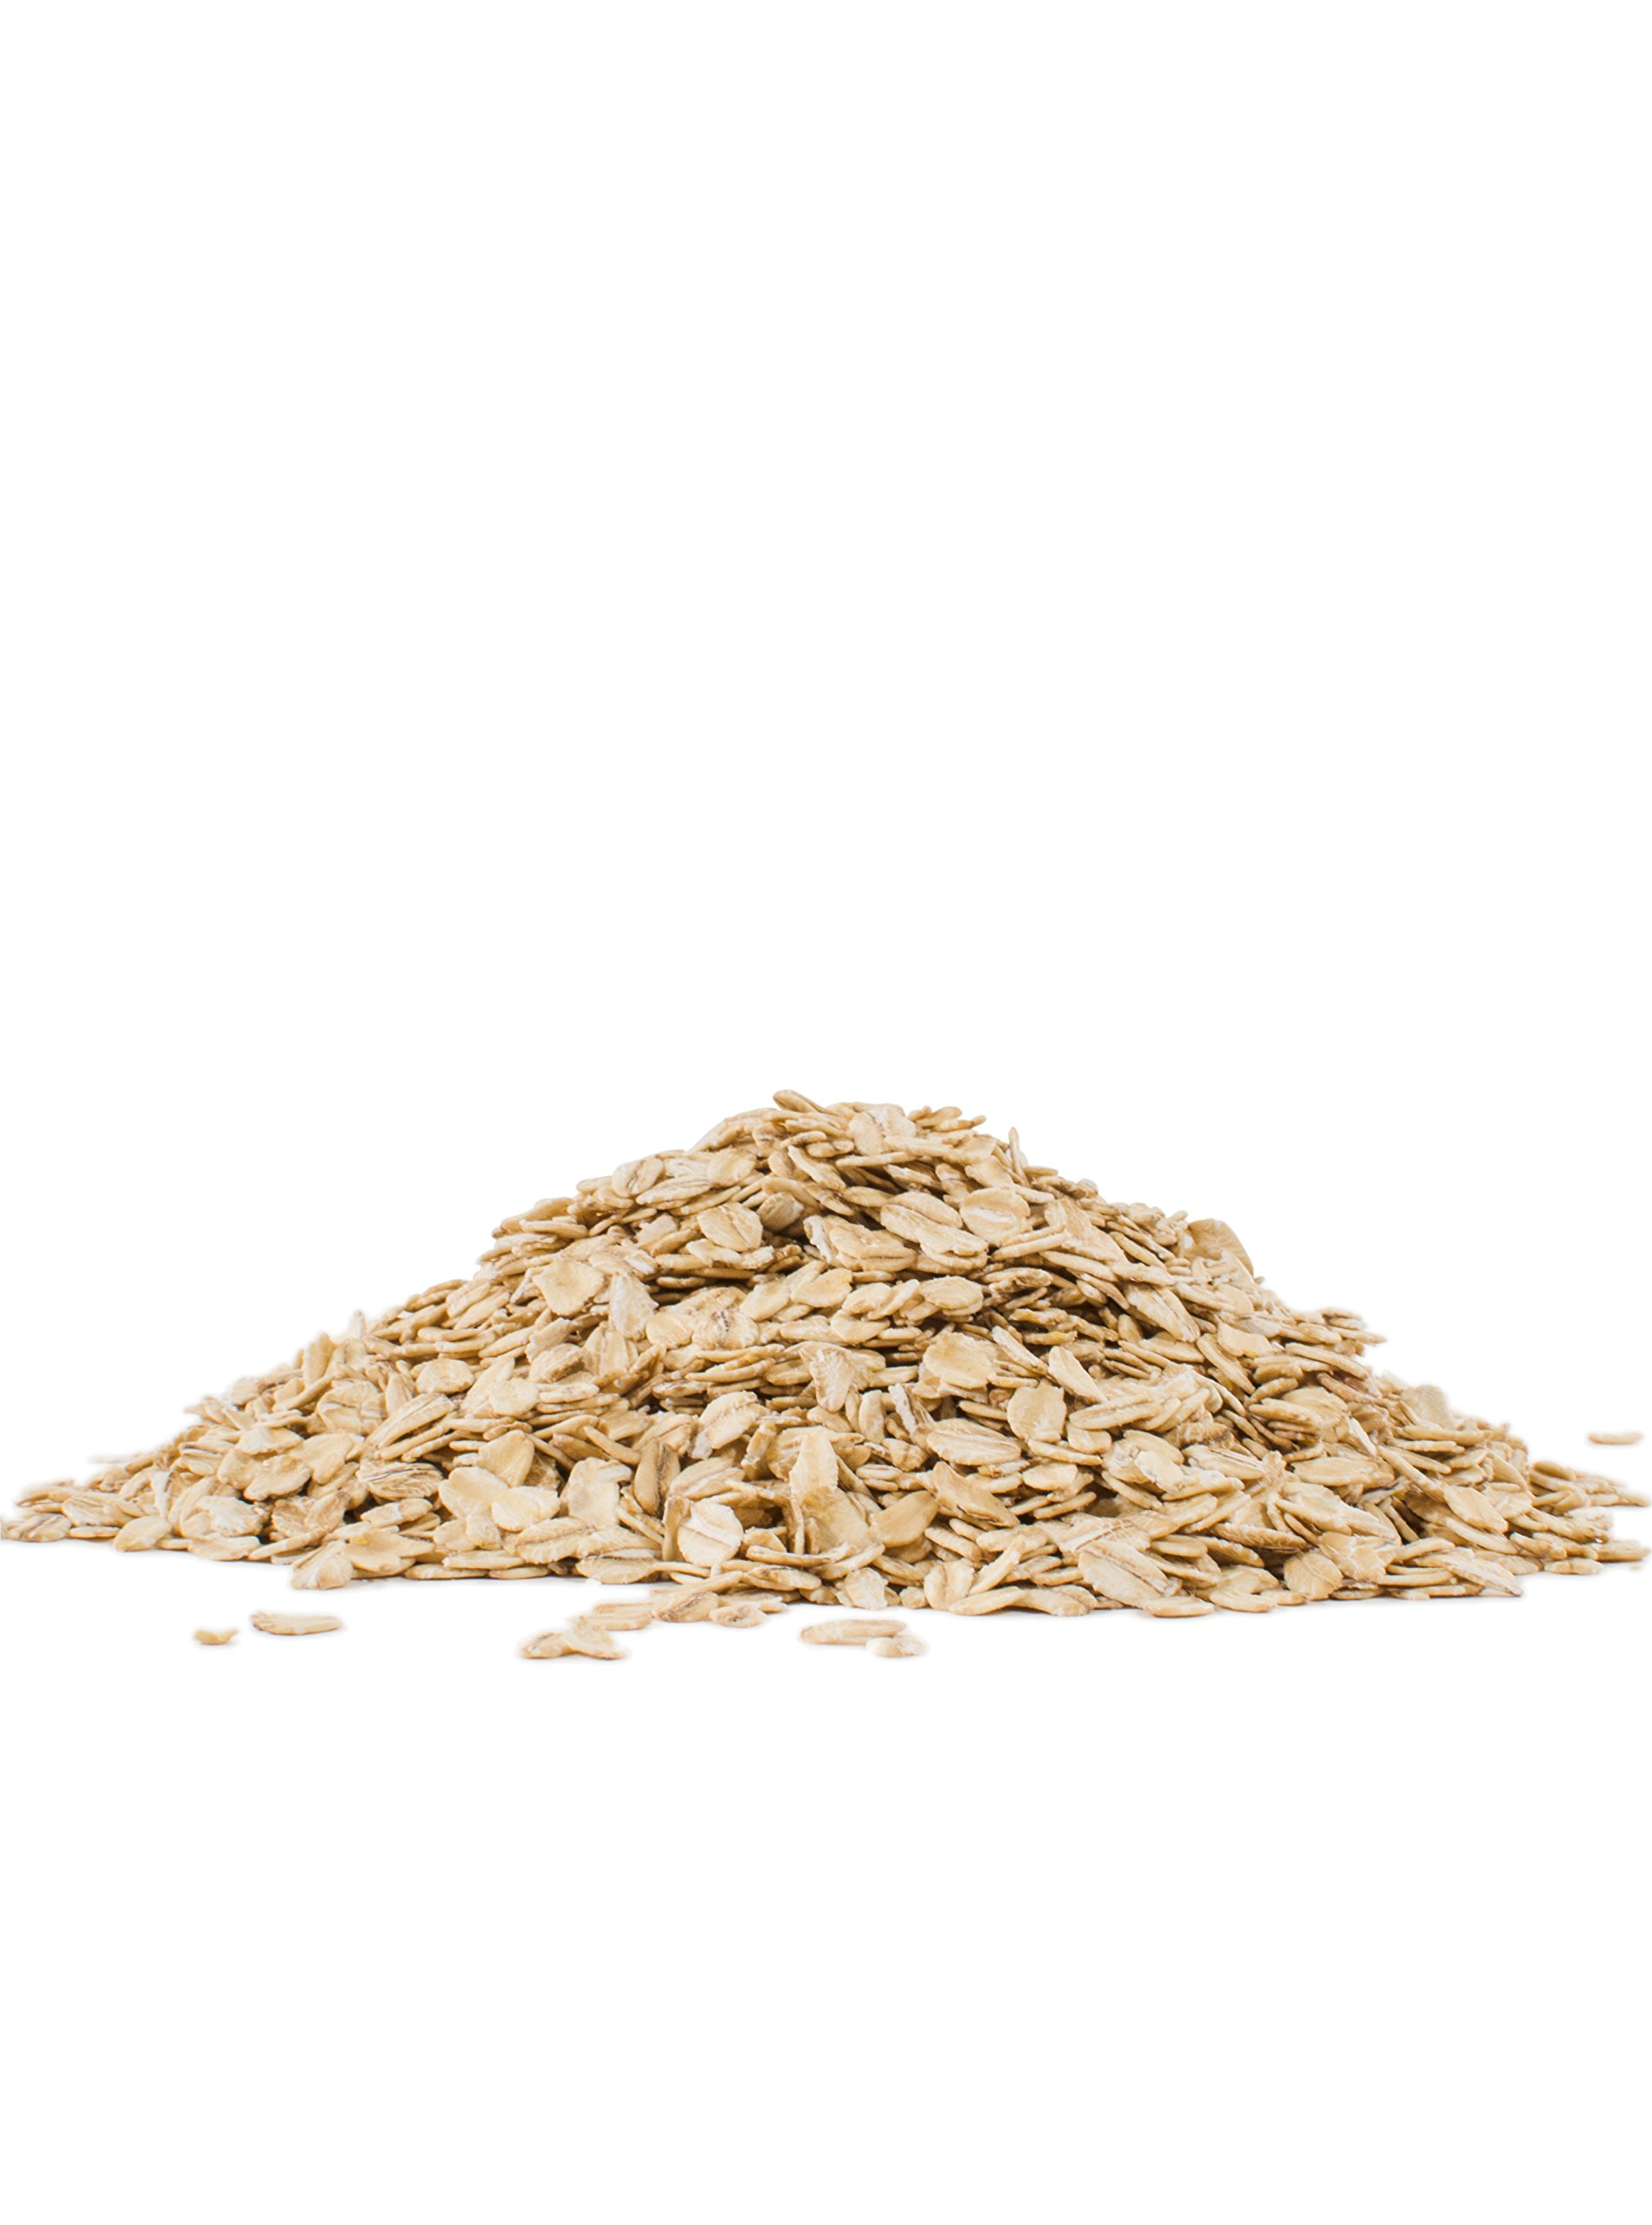 Bob's Red Mill Organic Extra Thick Rolled Oats, 16 Oz by Bob's Red Mill (Image #4)